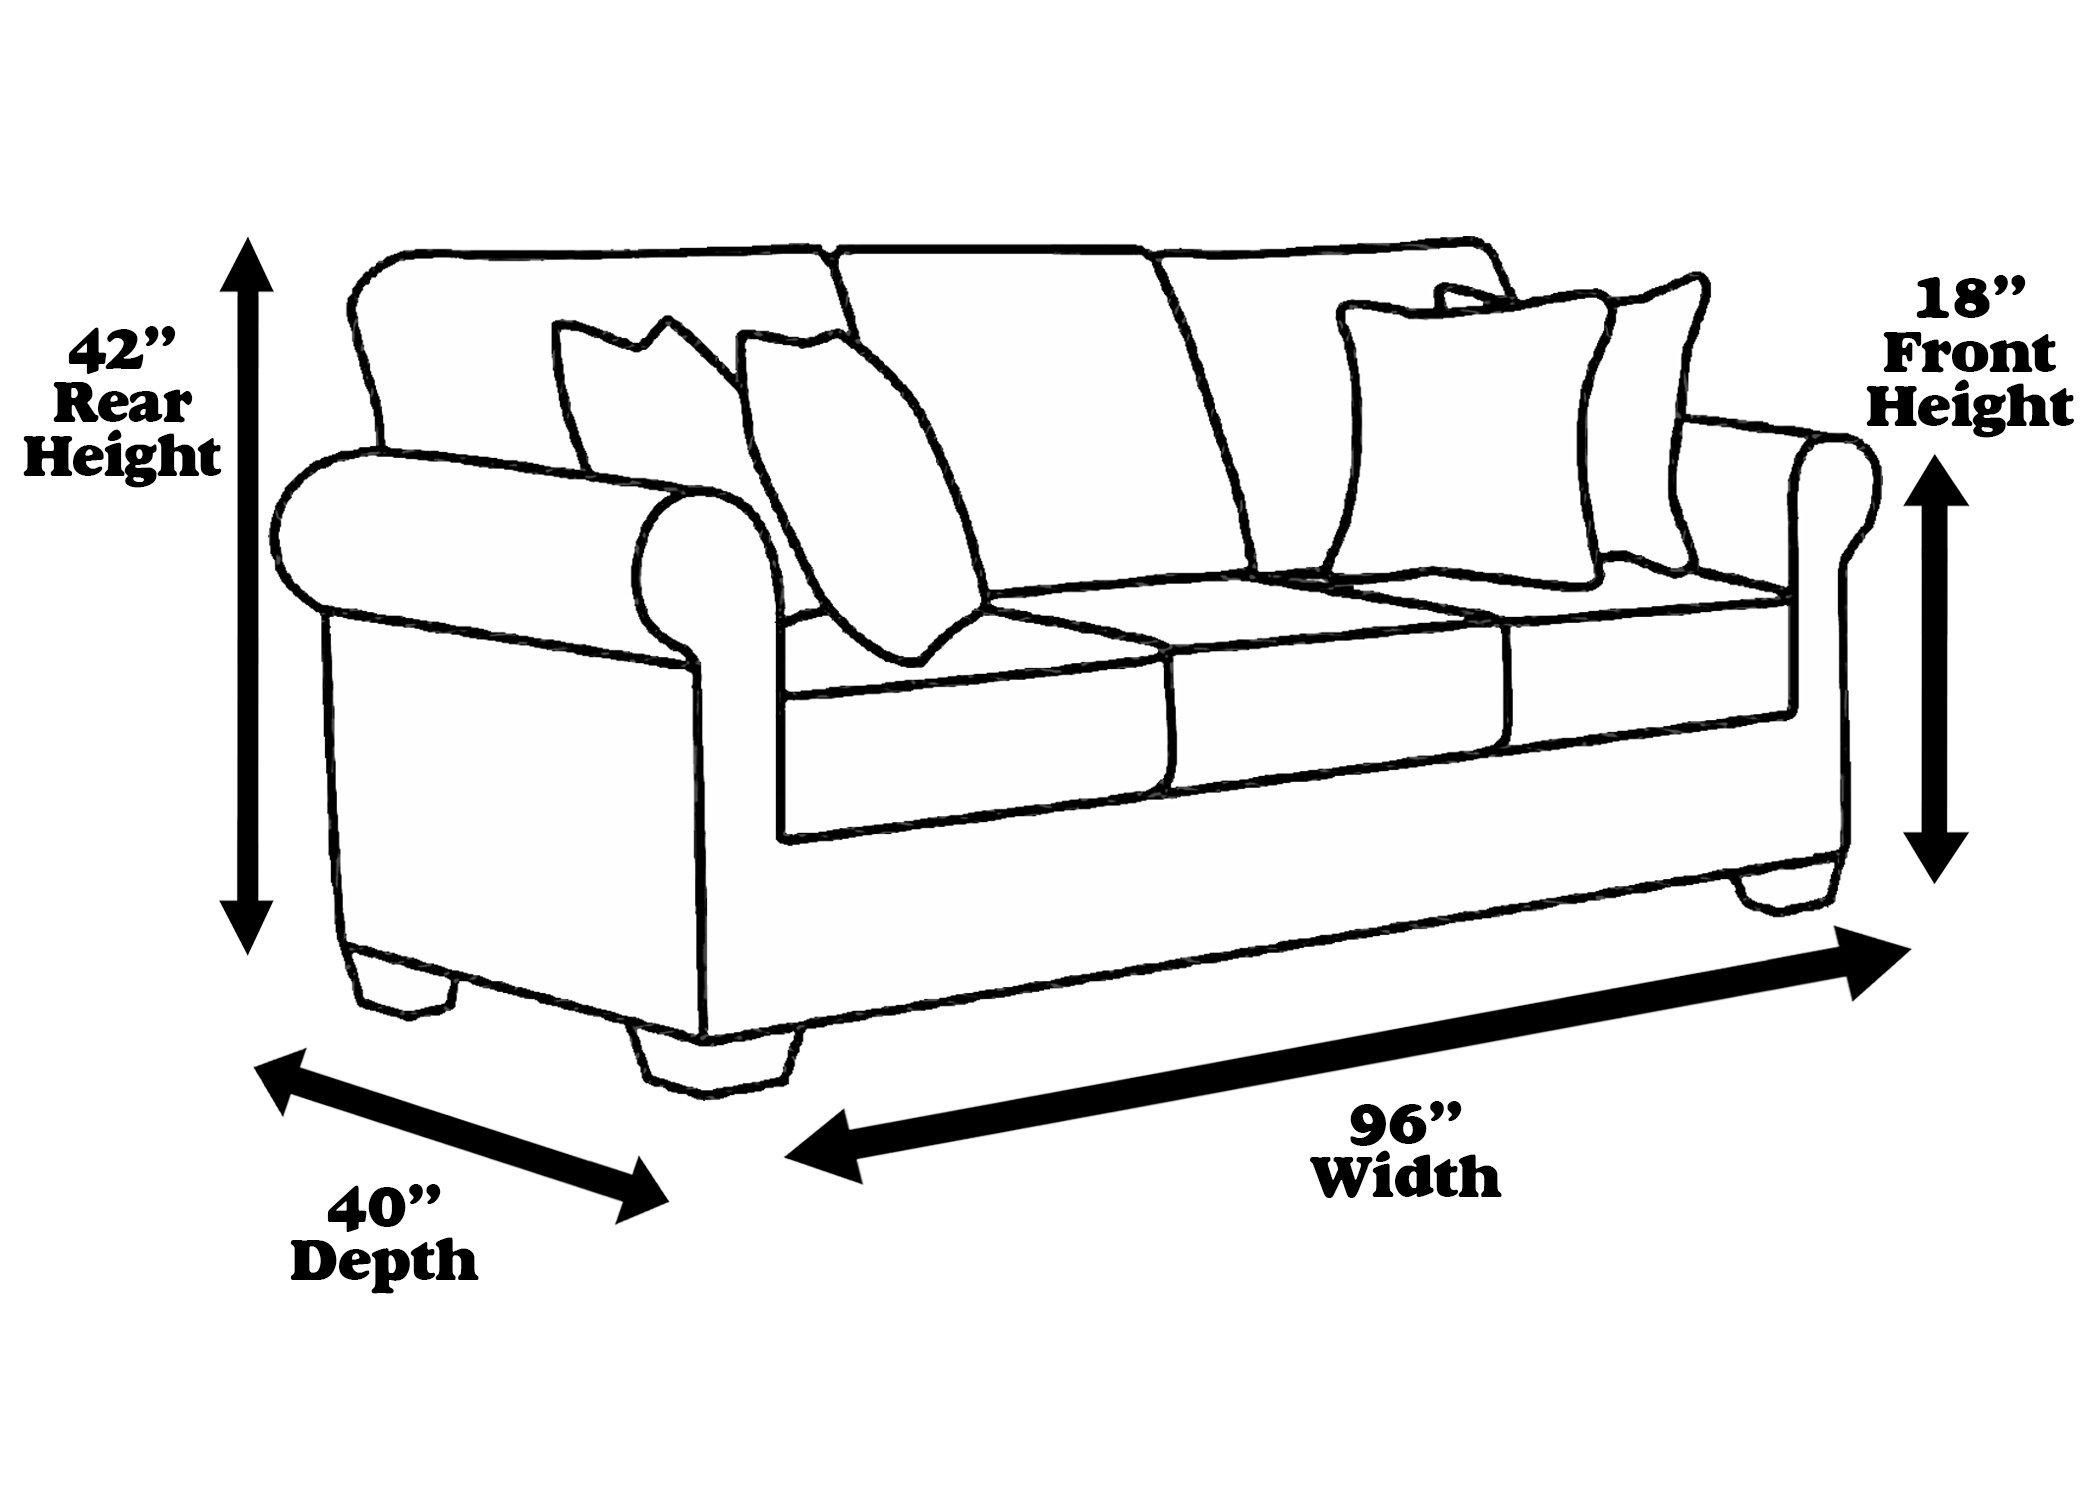 96'' Clear Vinyl Furniture Protector - Sofa Cover 96'' W X 40''D X 42''H rear, 18''H front )